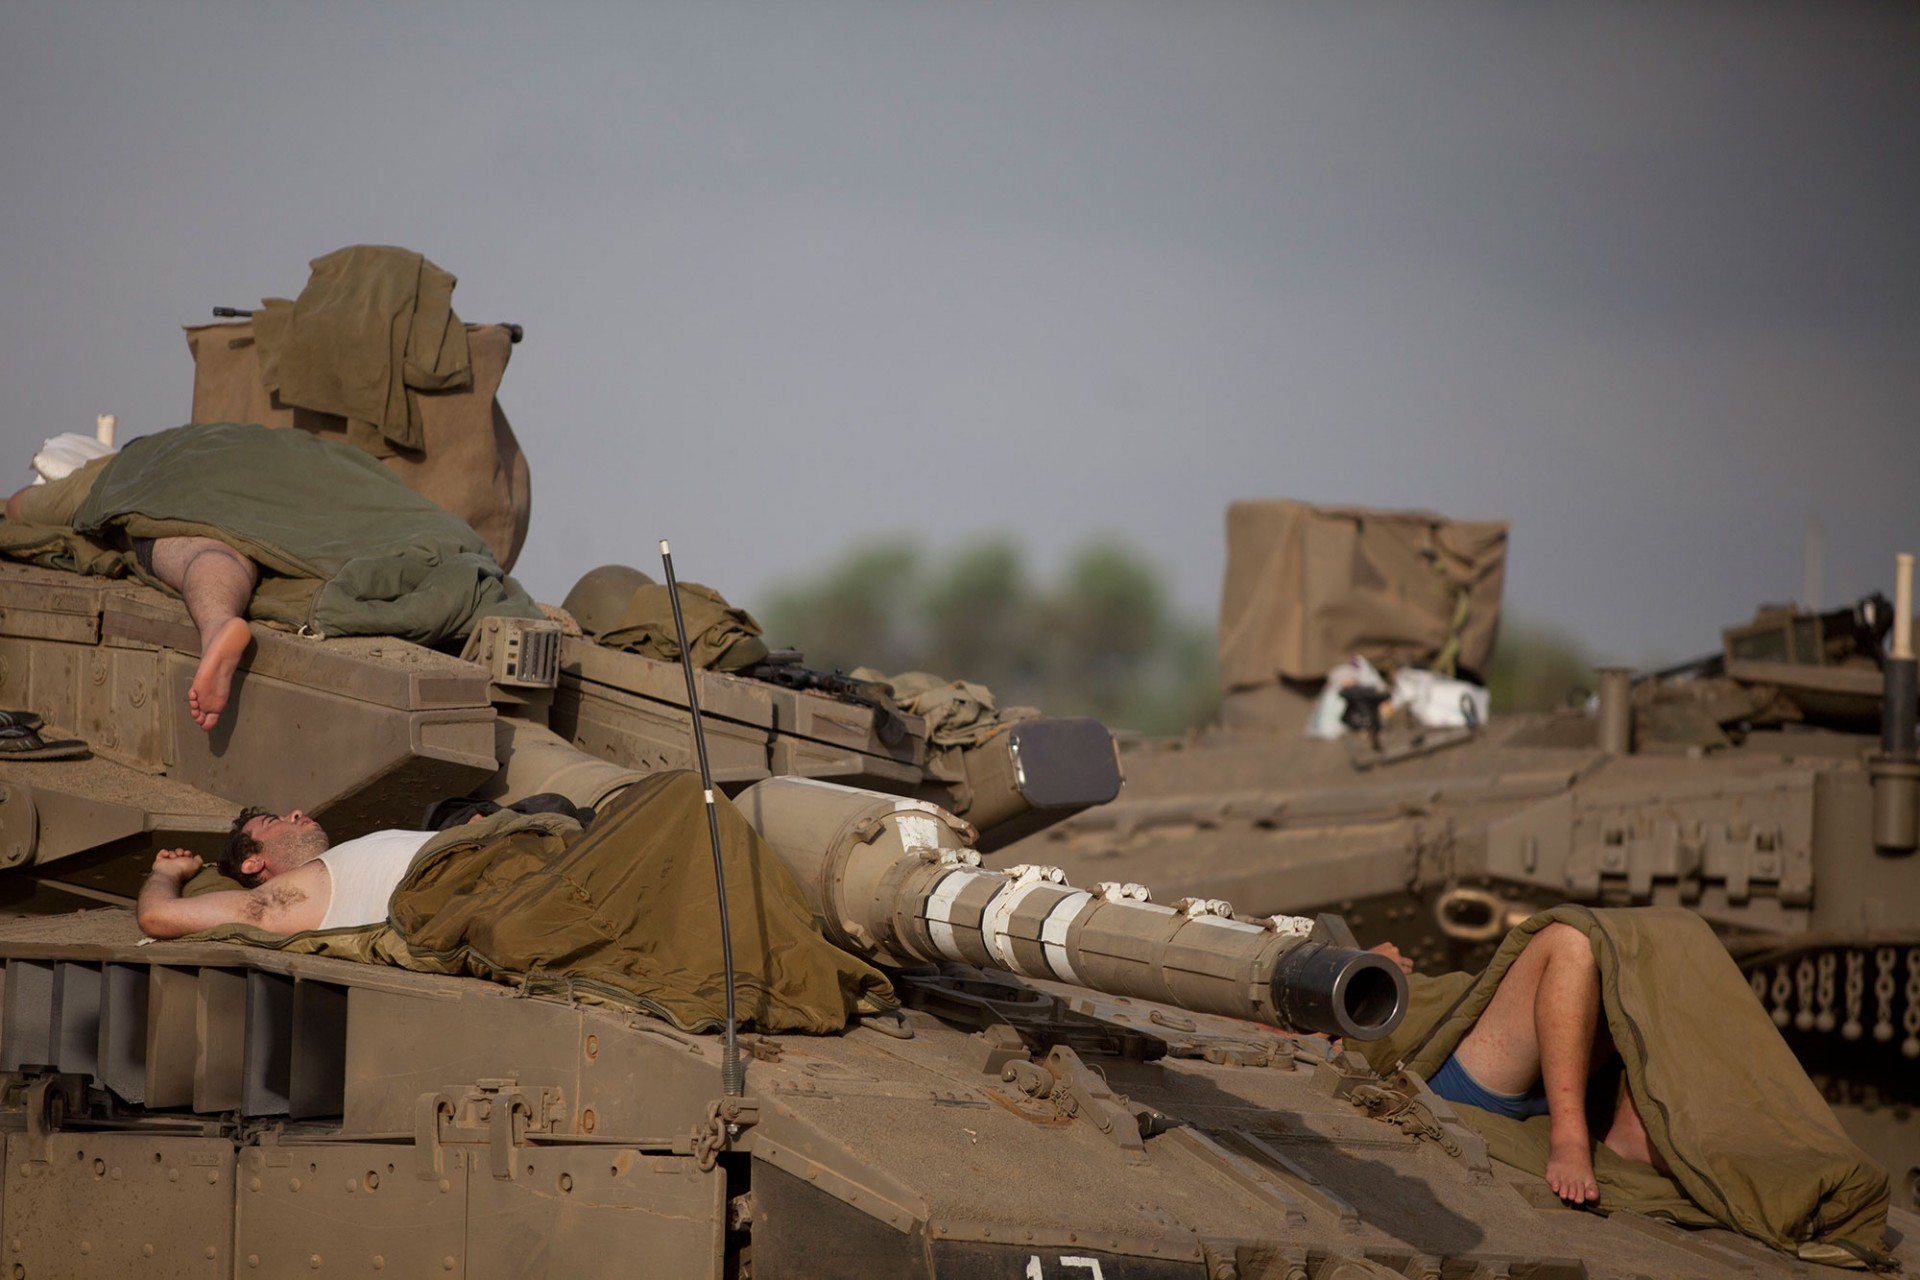 Israeli soldiers sleep on a tank in a deployment area on July 13, 2014 on Israel's border with the Gaza Strip.